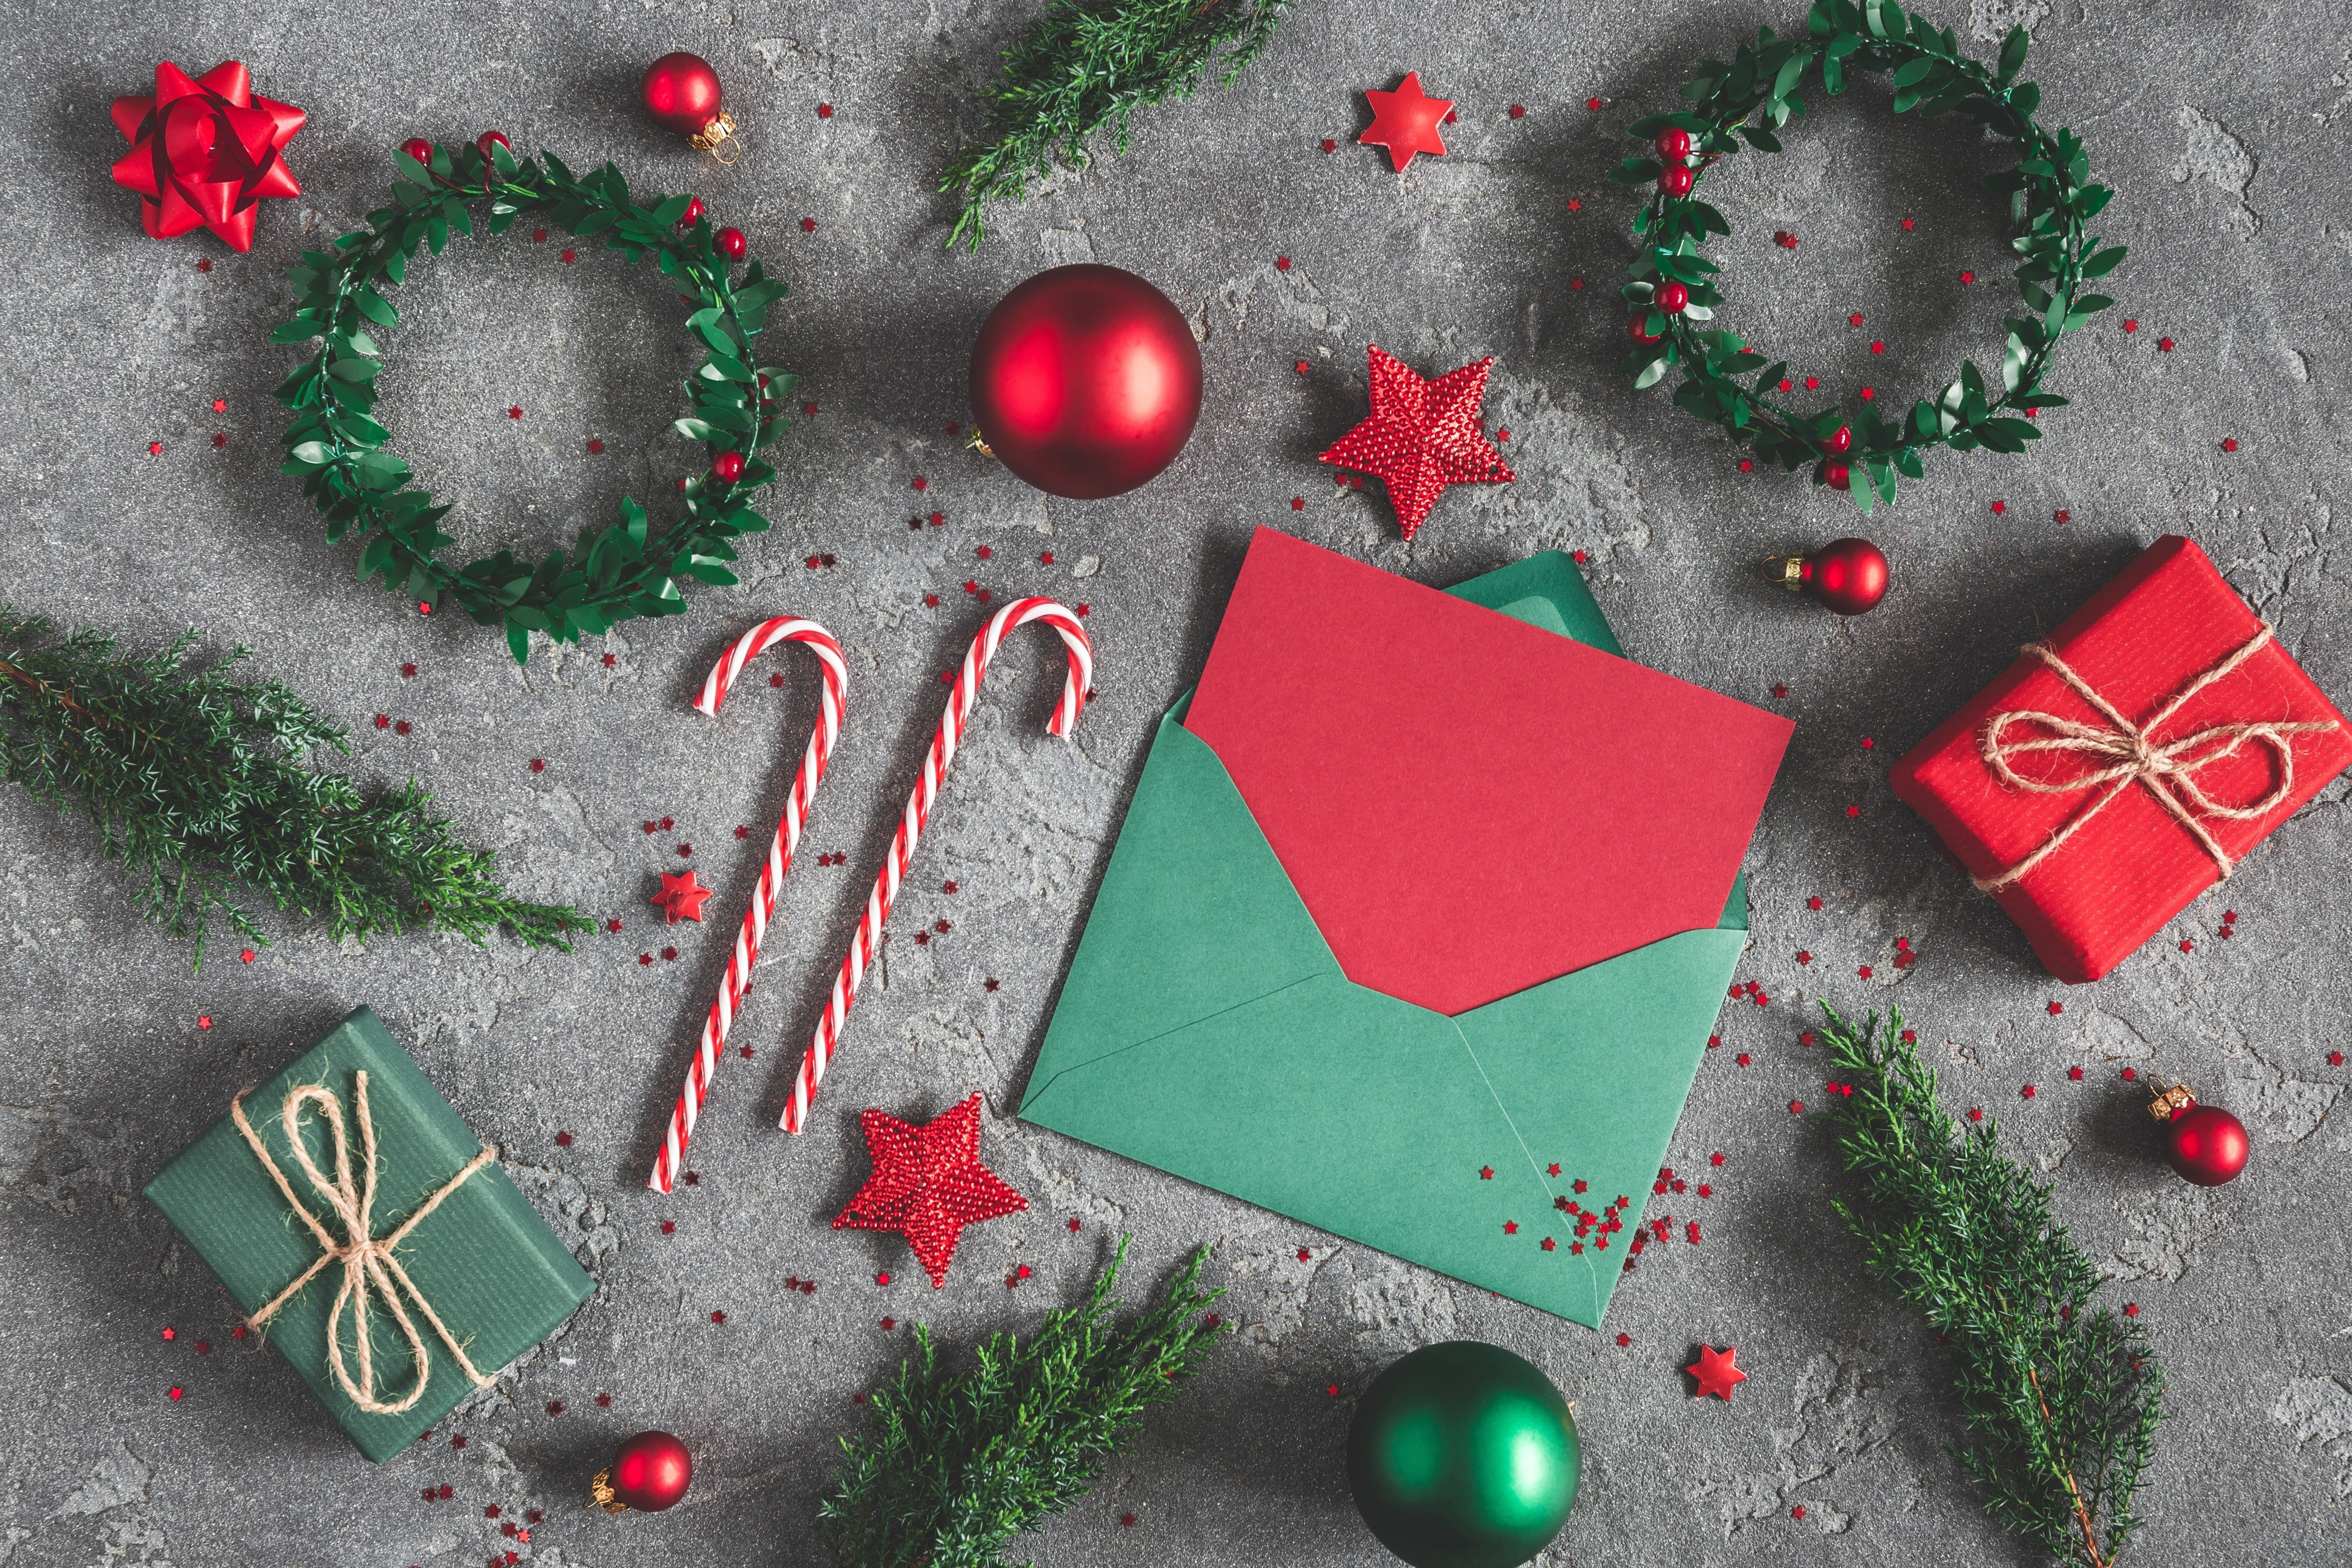 Christmas composition. Gifts, fir tree branches, envelope, card, red decorations on black background. Christmas, winter, new year concept. Flat lay, top view